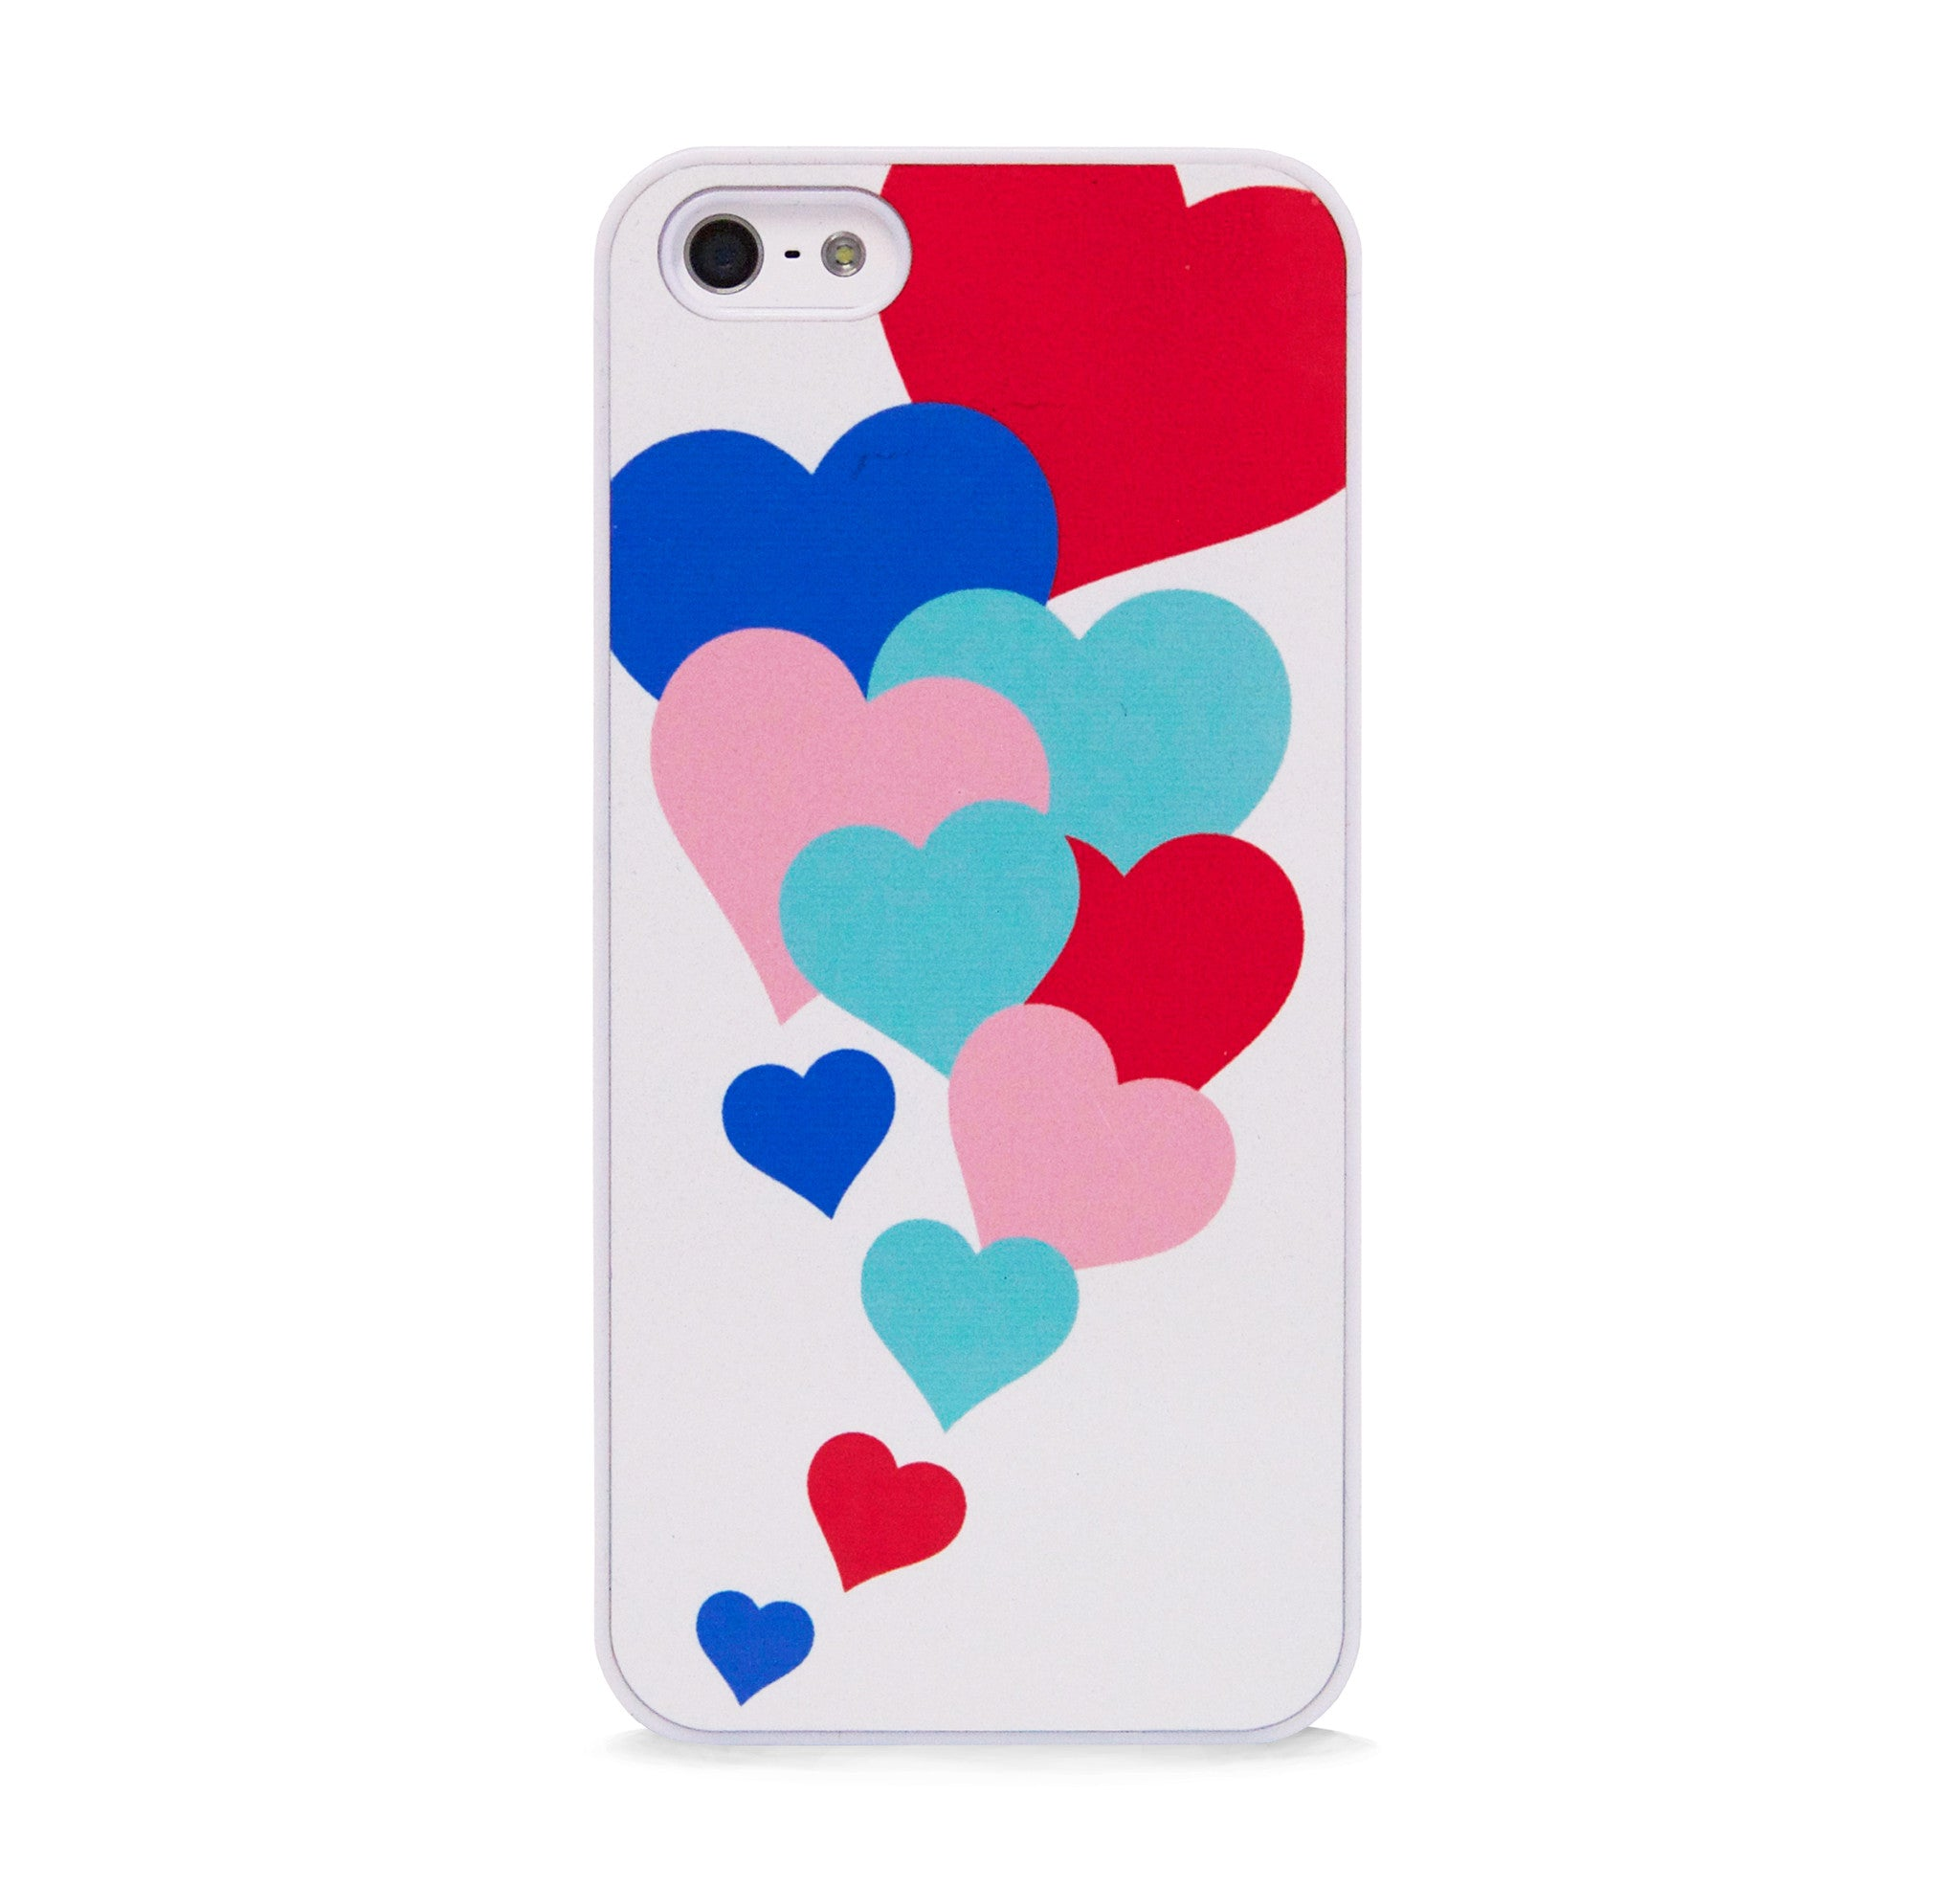 MULTI FOREVER HEARTS FOR IPHONE 5/5S